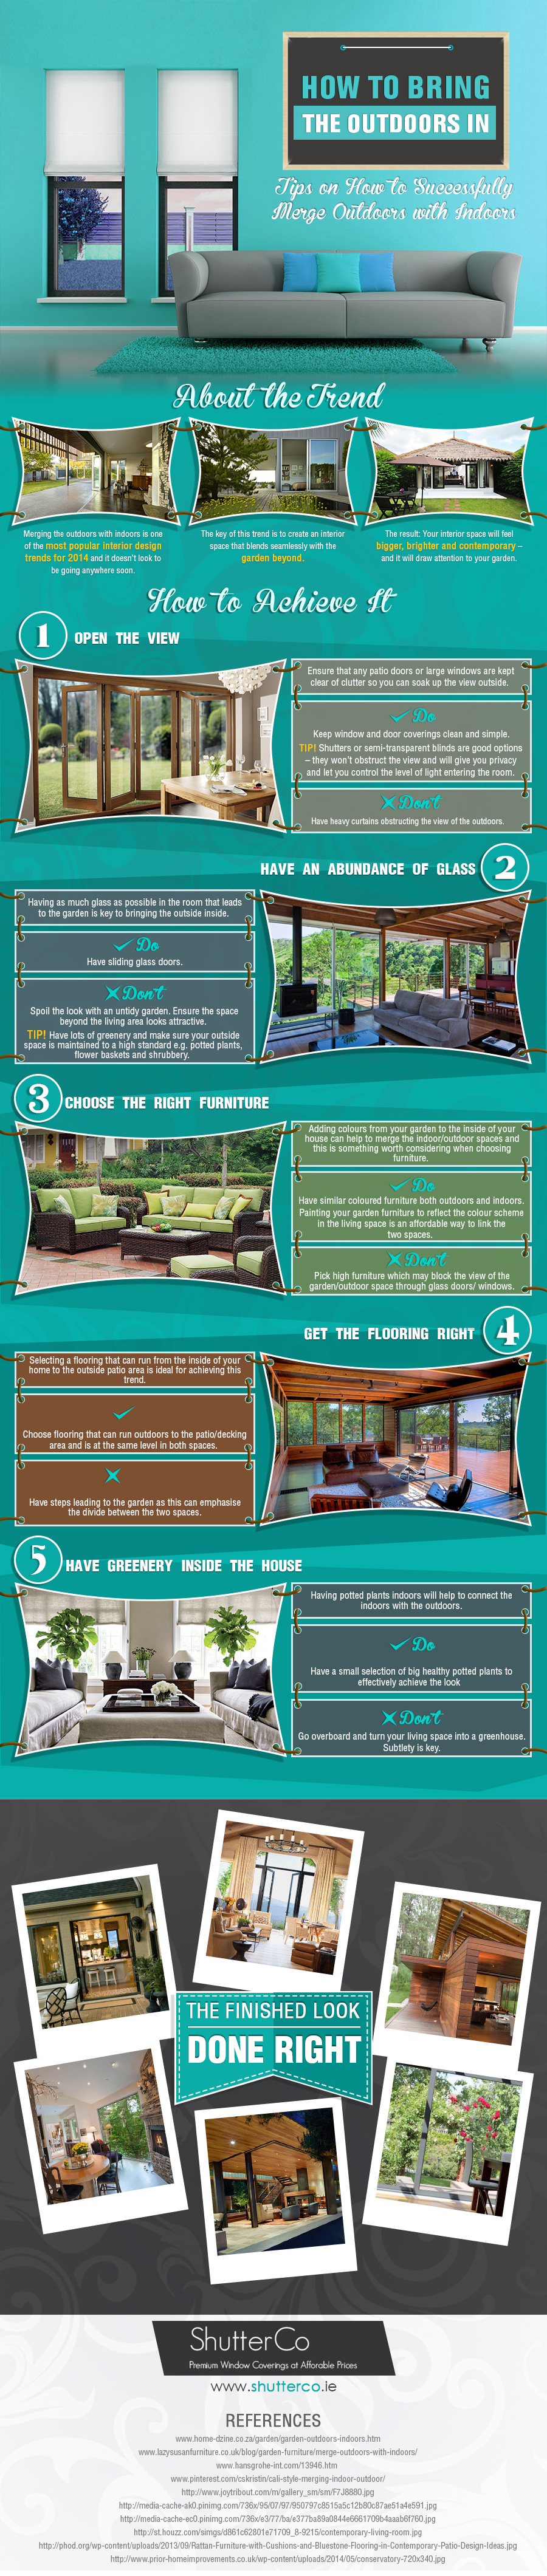 bring the outsides in infographic